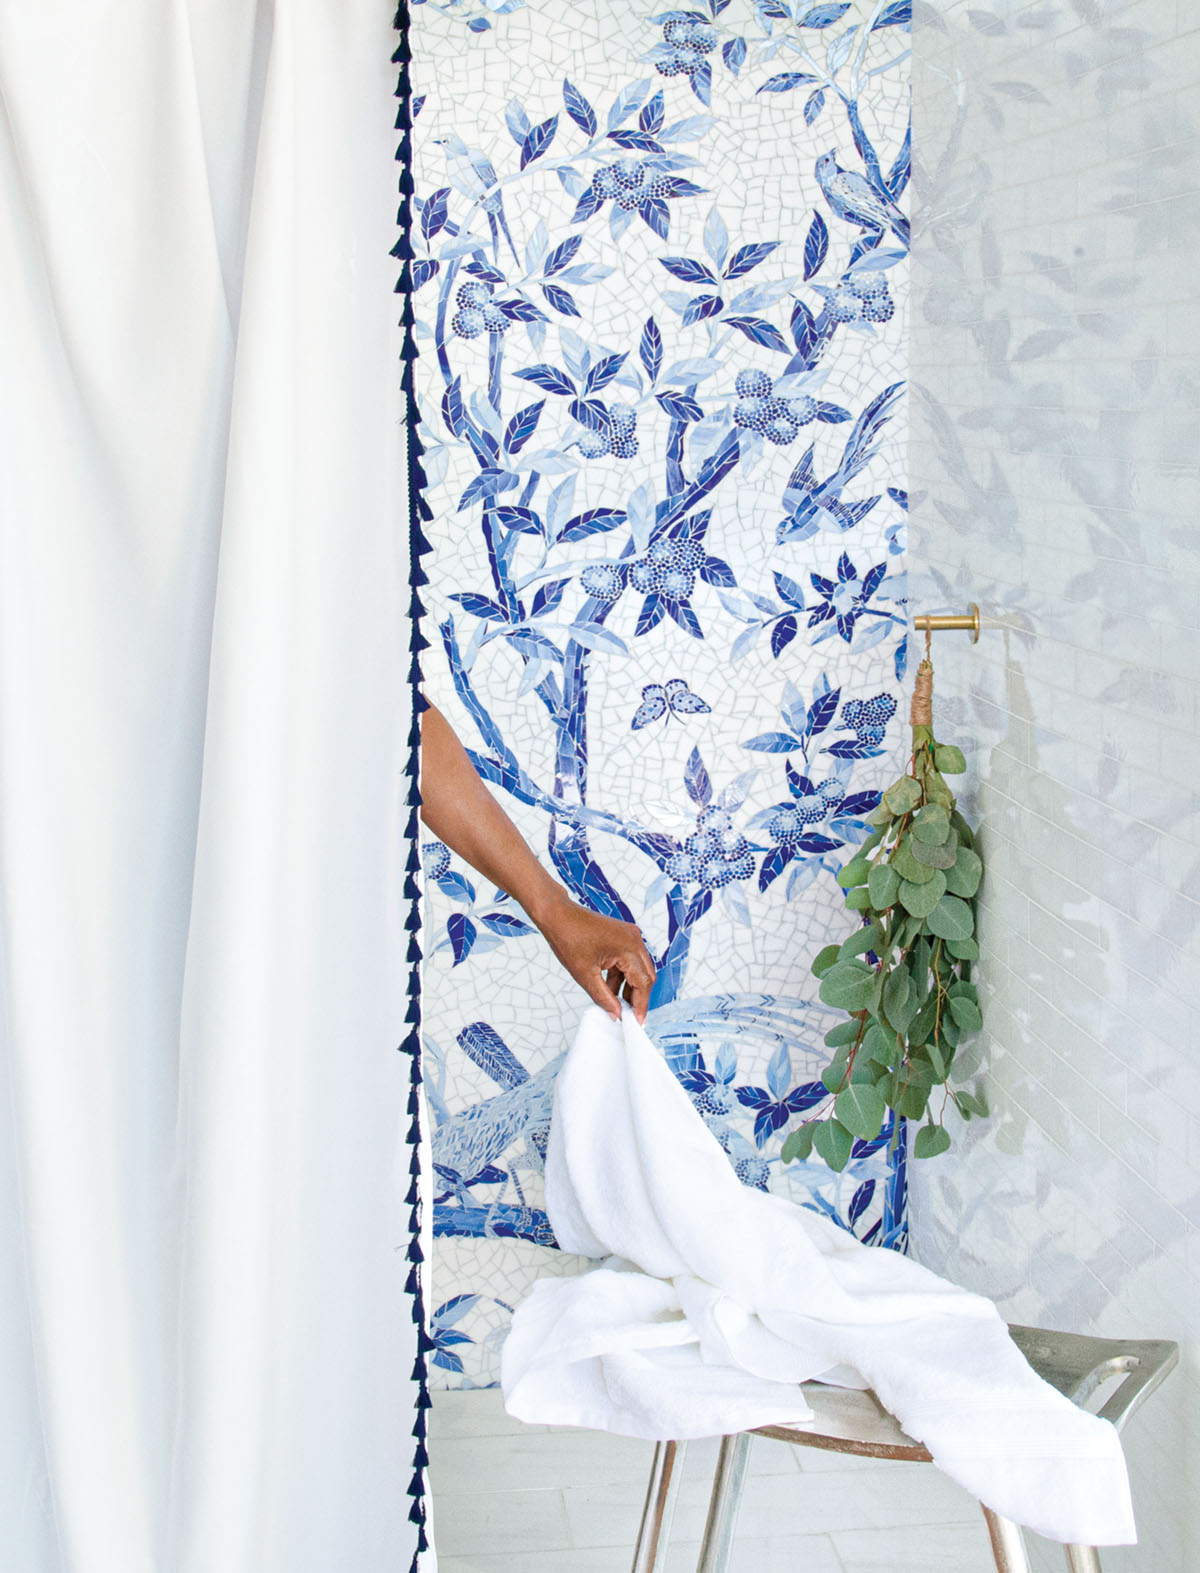 shower wall titled with a blue-and-white mosaic